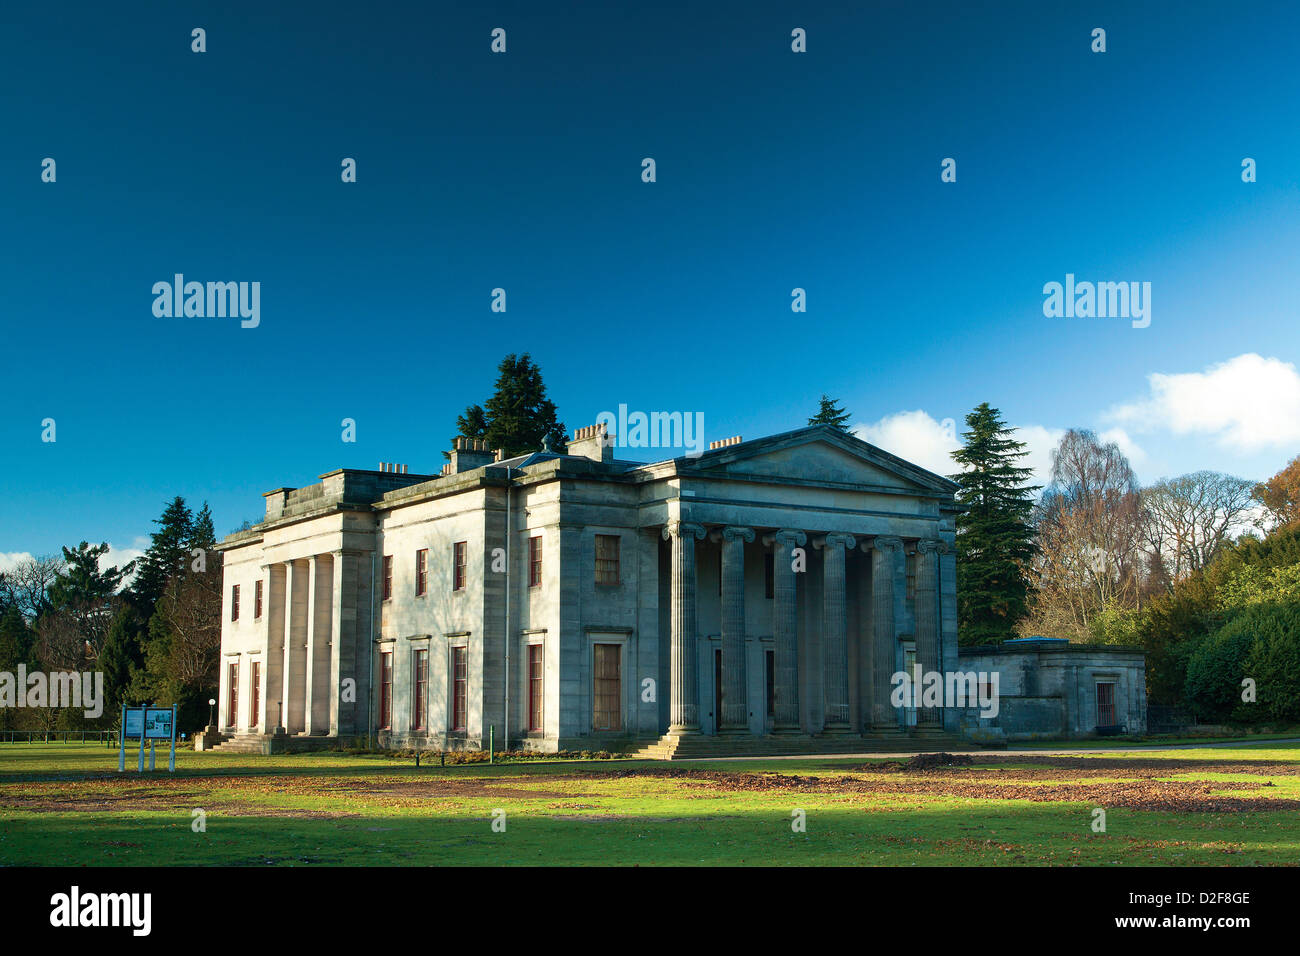 Camperdown House, Camperdown Country Park, Dundee - Stock Image